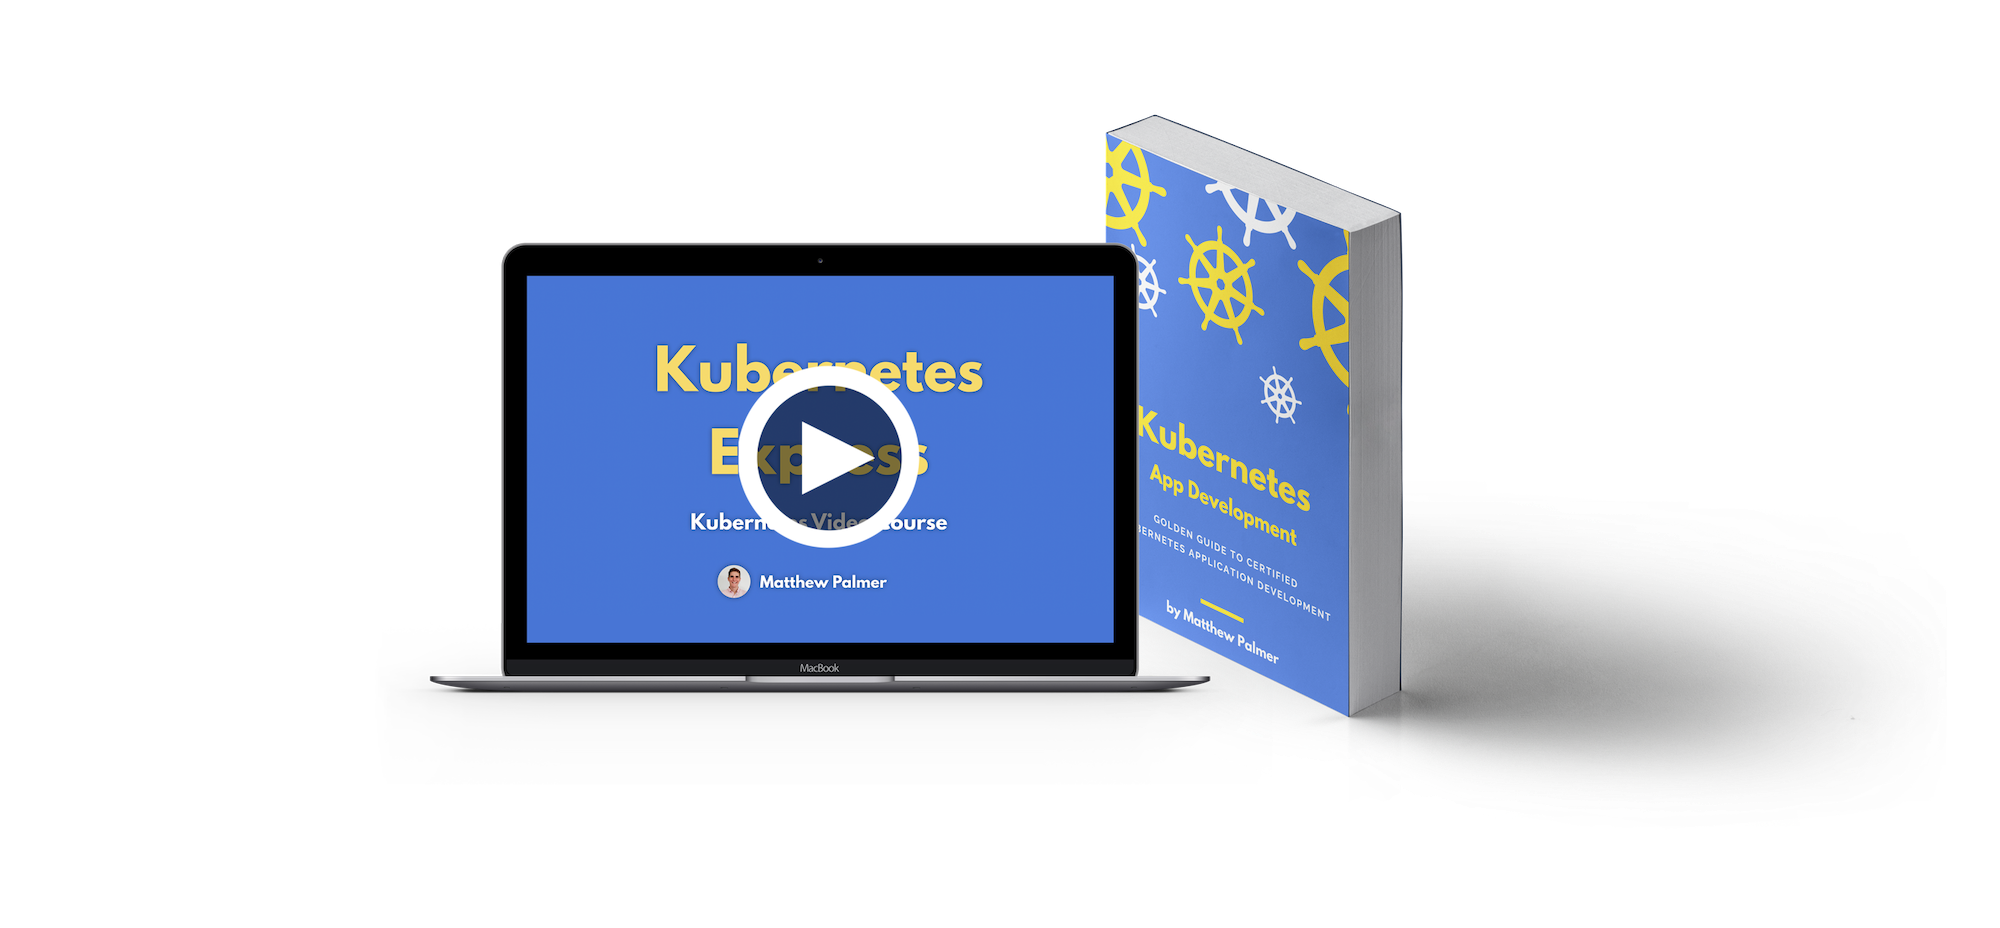 Kubernetes Express – all-in-one Kubernetes video training course